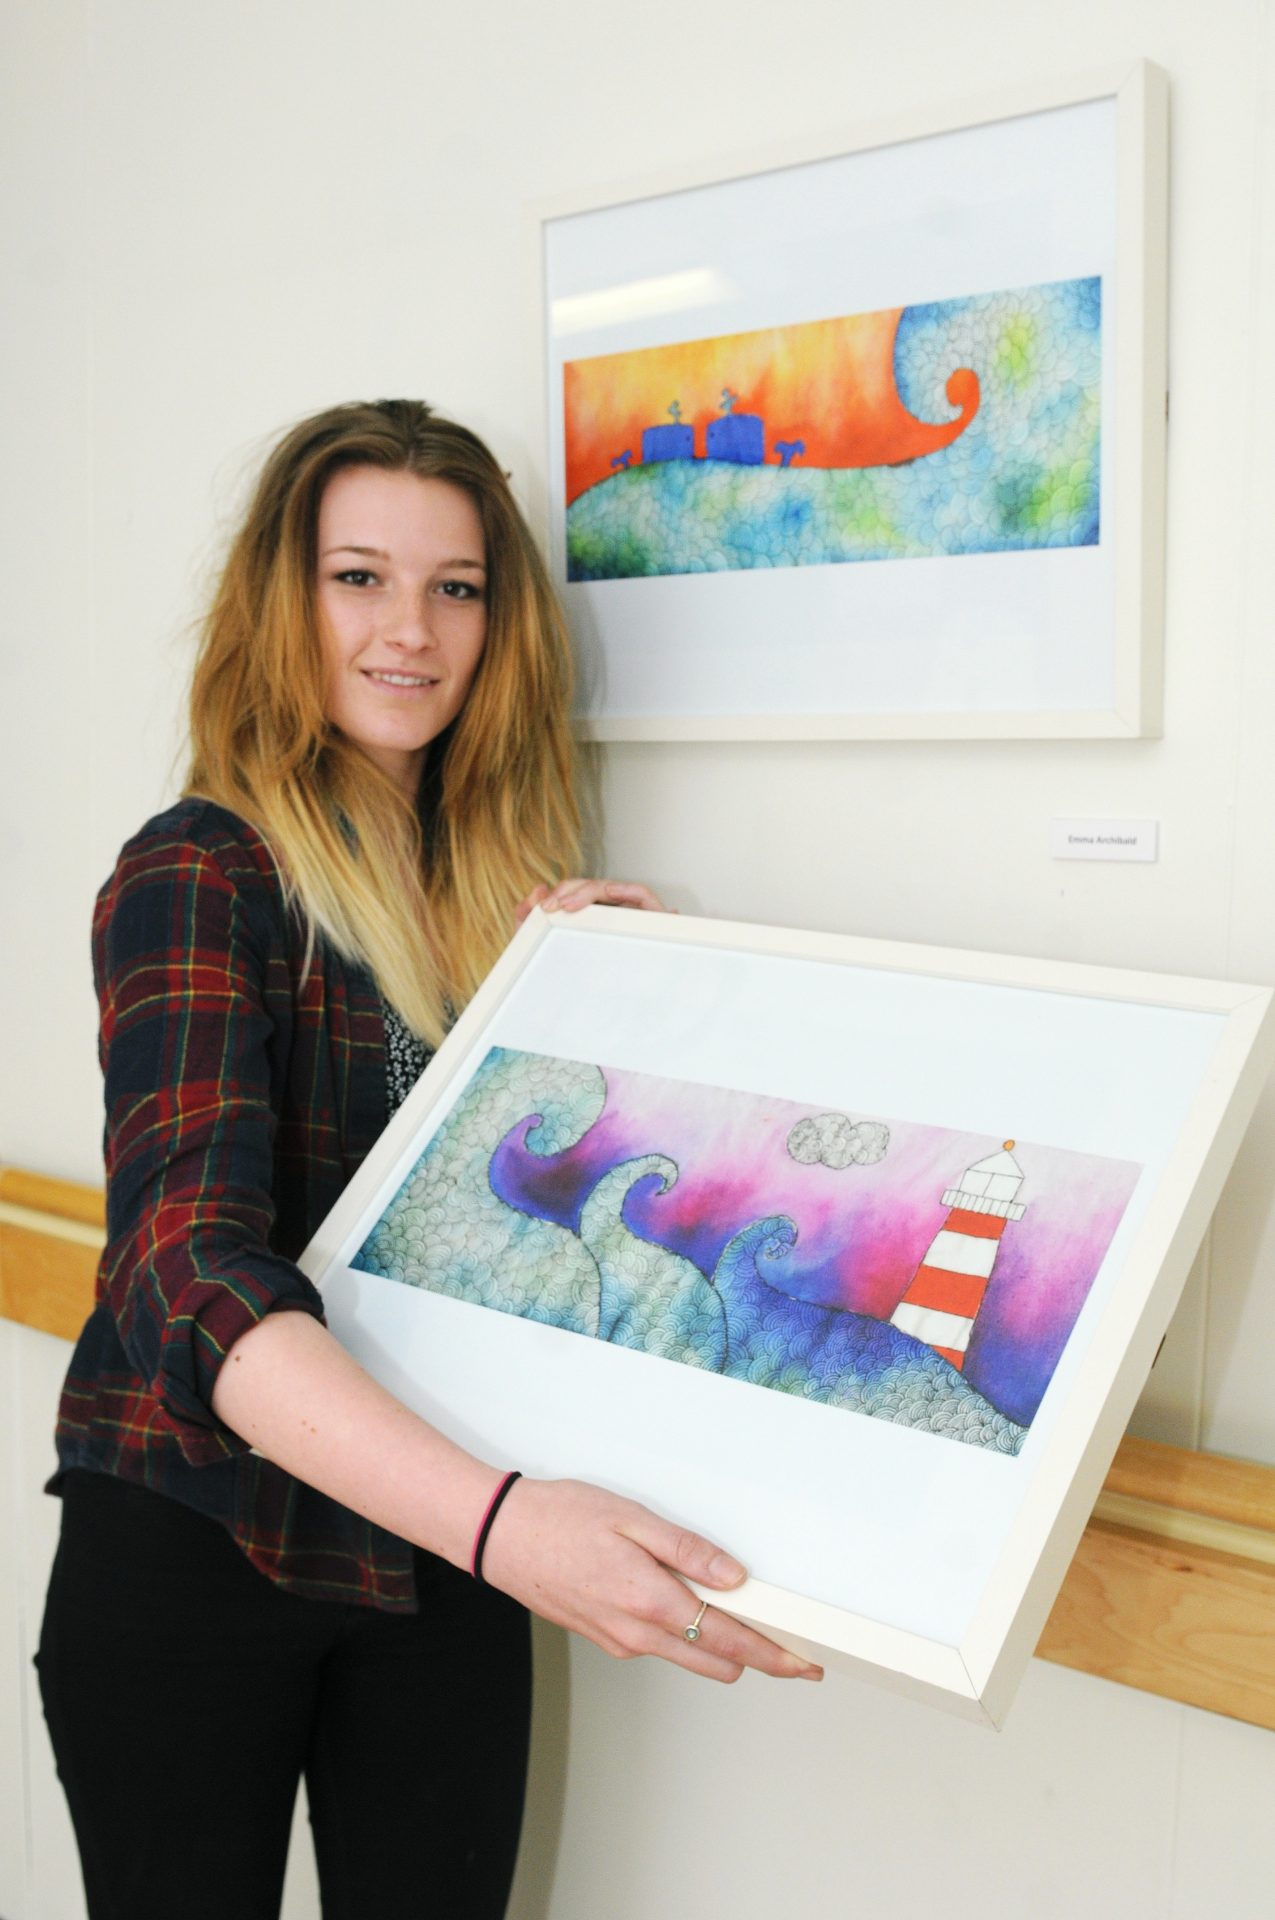 Exhibition by students from Newcastle College unveiled at North Tyneside General Hospital